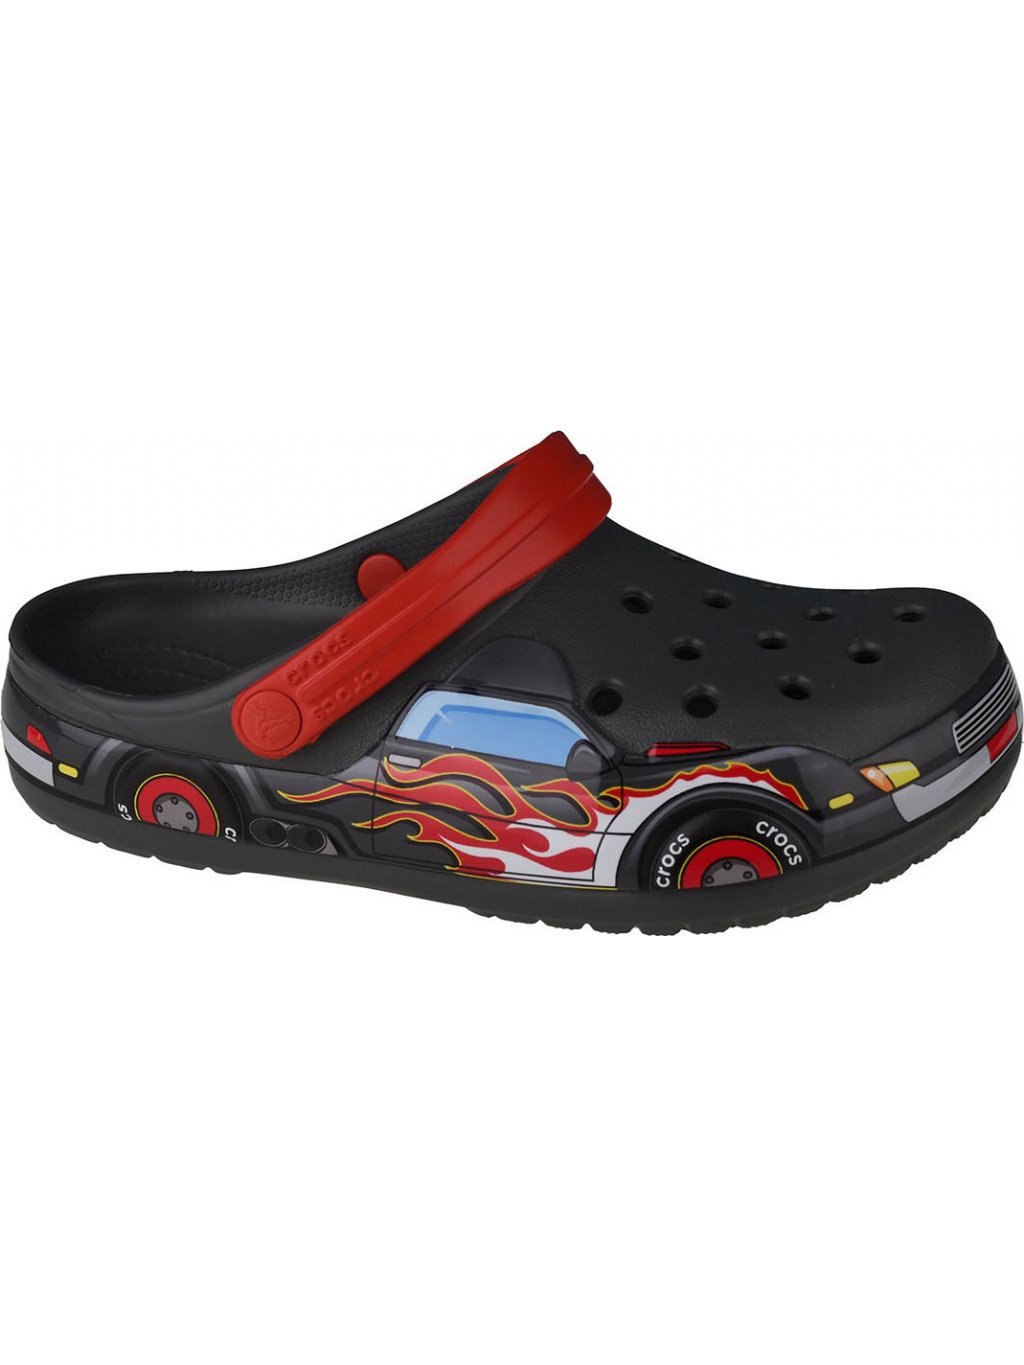 CROCS FUN LAB TRUCK BAND CLOG 207074-0DA